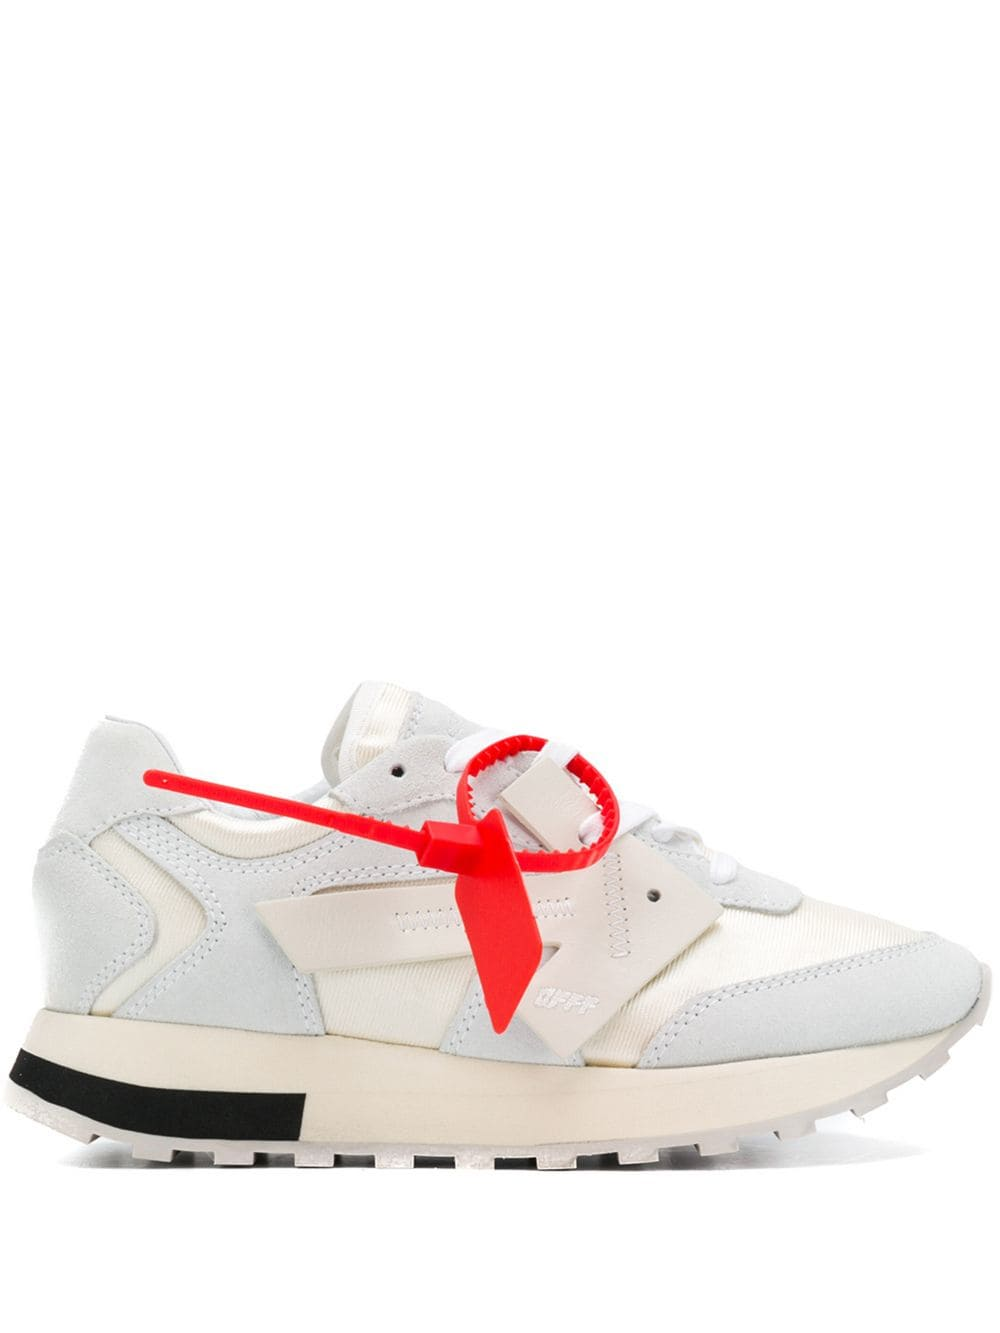 Off-White Women's Runner Sneakers | Off White Women